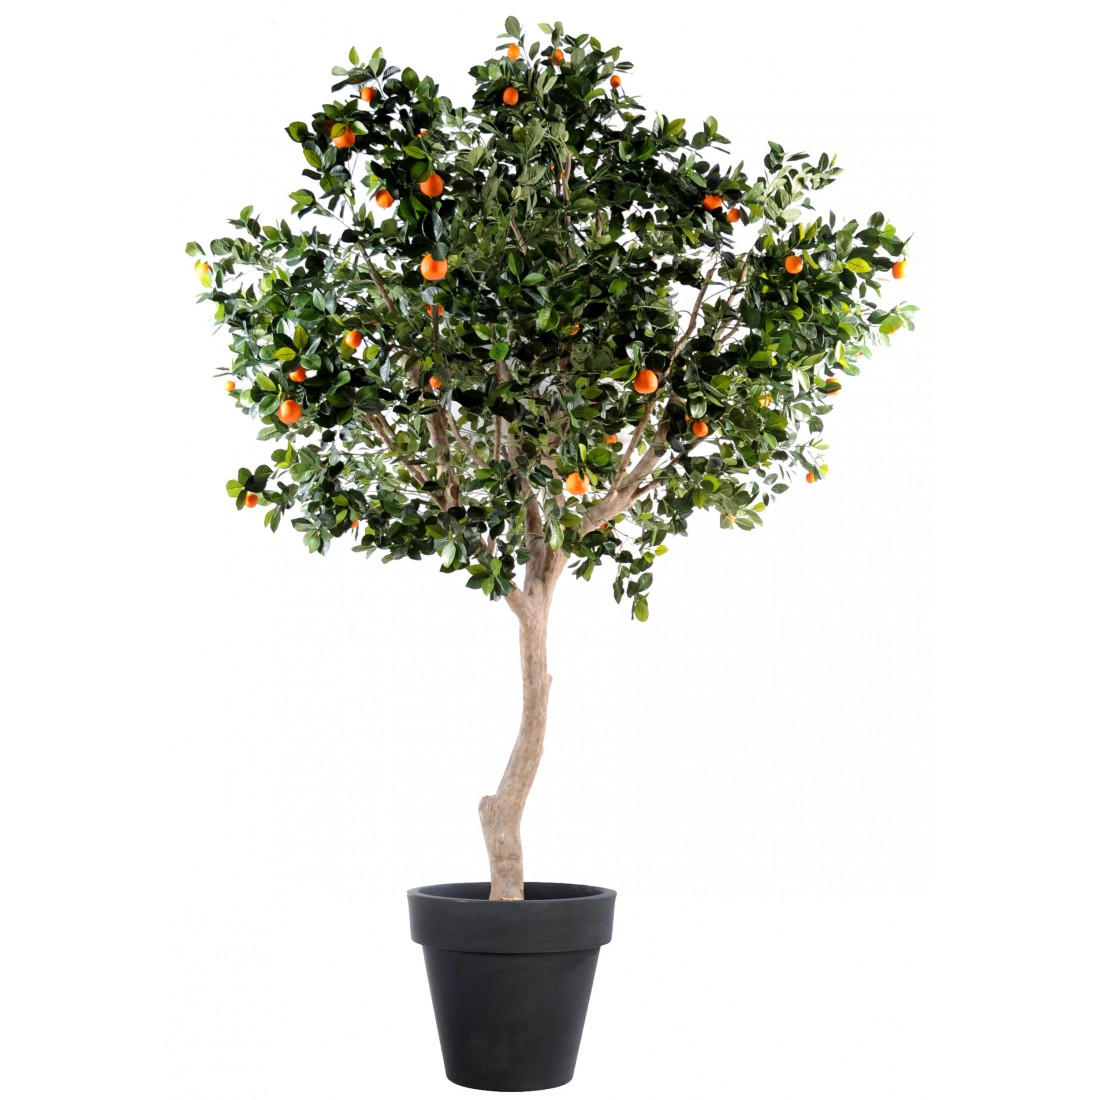 Oranger artificiel arbre large 280cm arbres mediterraneens fruitiers artificiels artificielles - Arbre fruitier en pot ...